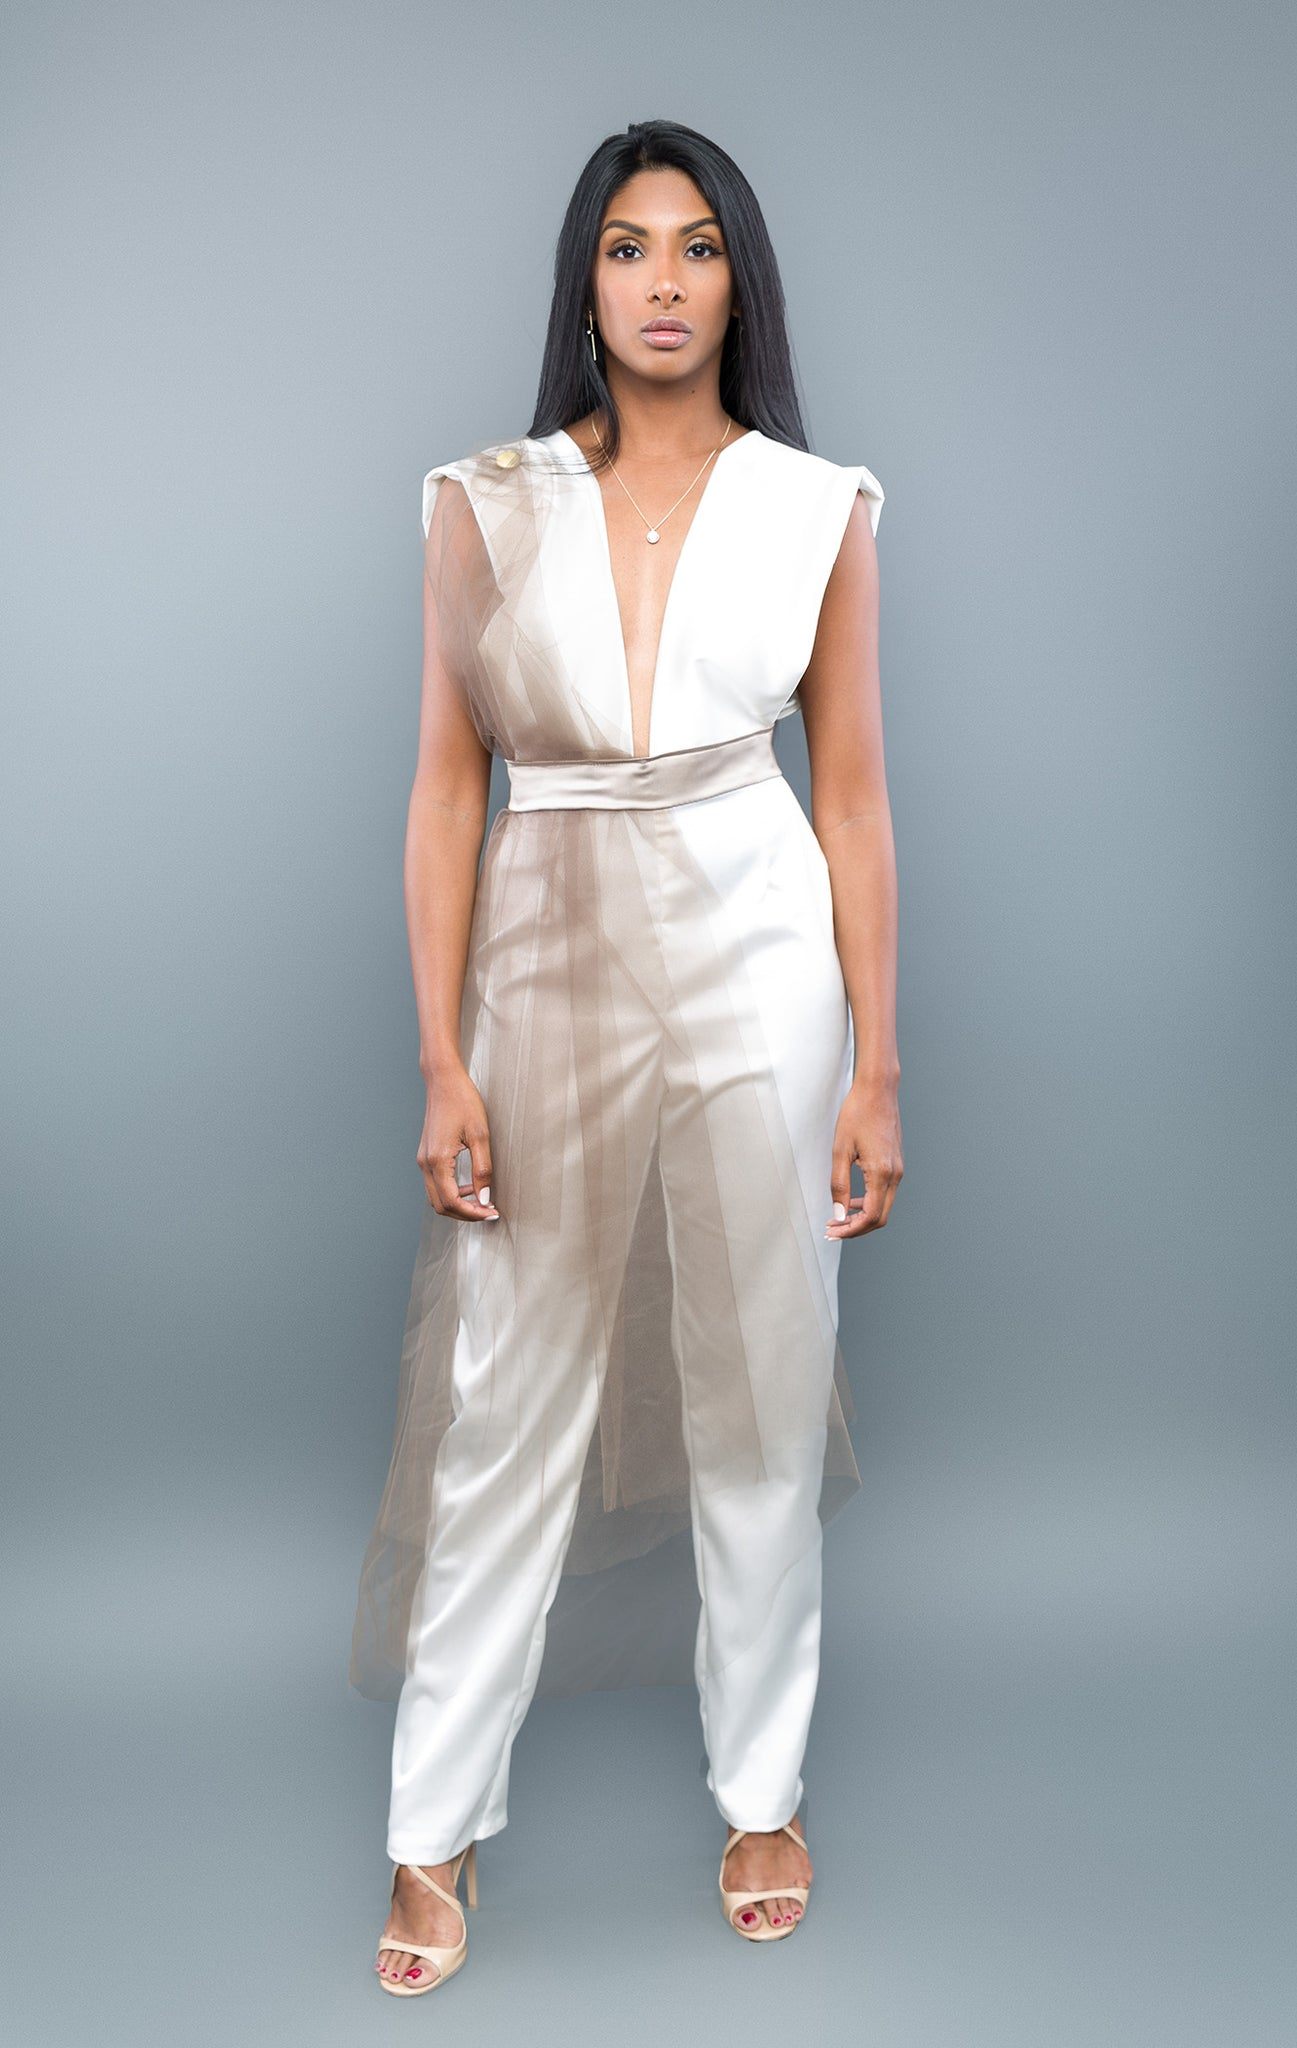 Risqué Jumpsuit - XS / Off-White/Taupe - S / Off-White/Taupe - M / Off-White/Taupe - L / Off-White/Taupe